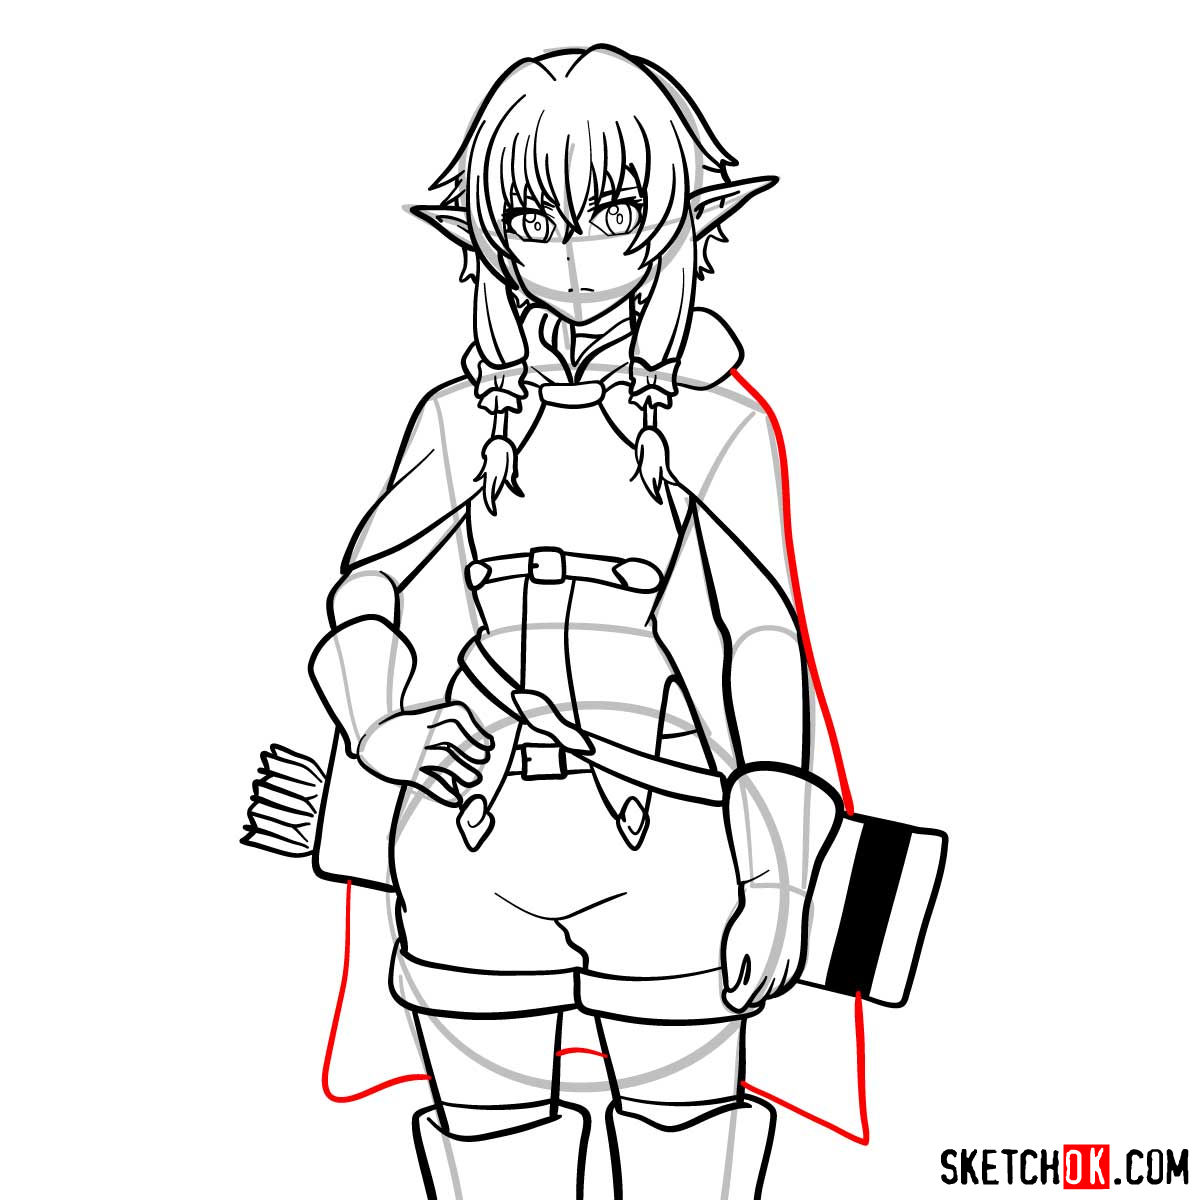 20 steps drawing tutorial of High Elf Archer (Goblin Slayer) - step 16